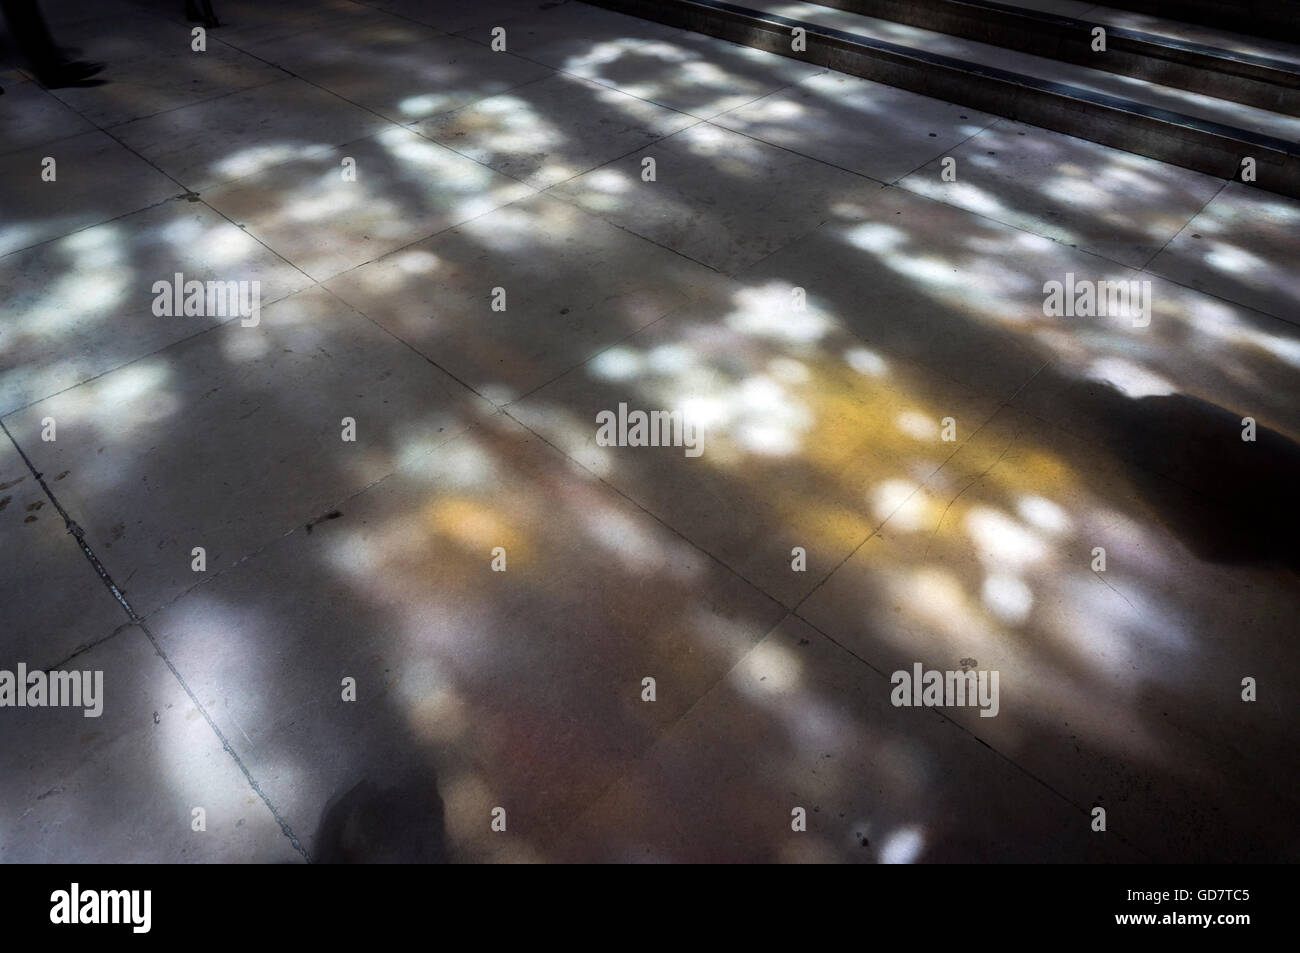 Dappled light passing through stained glass on to the floor of St. Stephen's Porch at the Palace of Westminster, - Stock Image